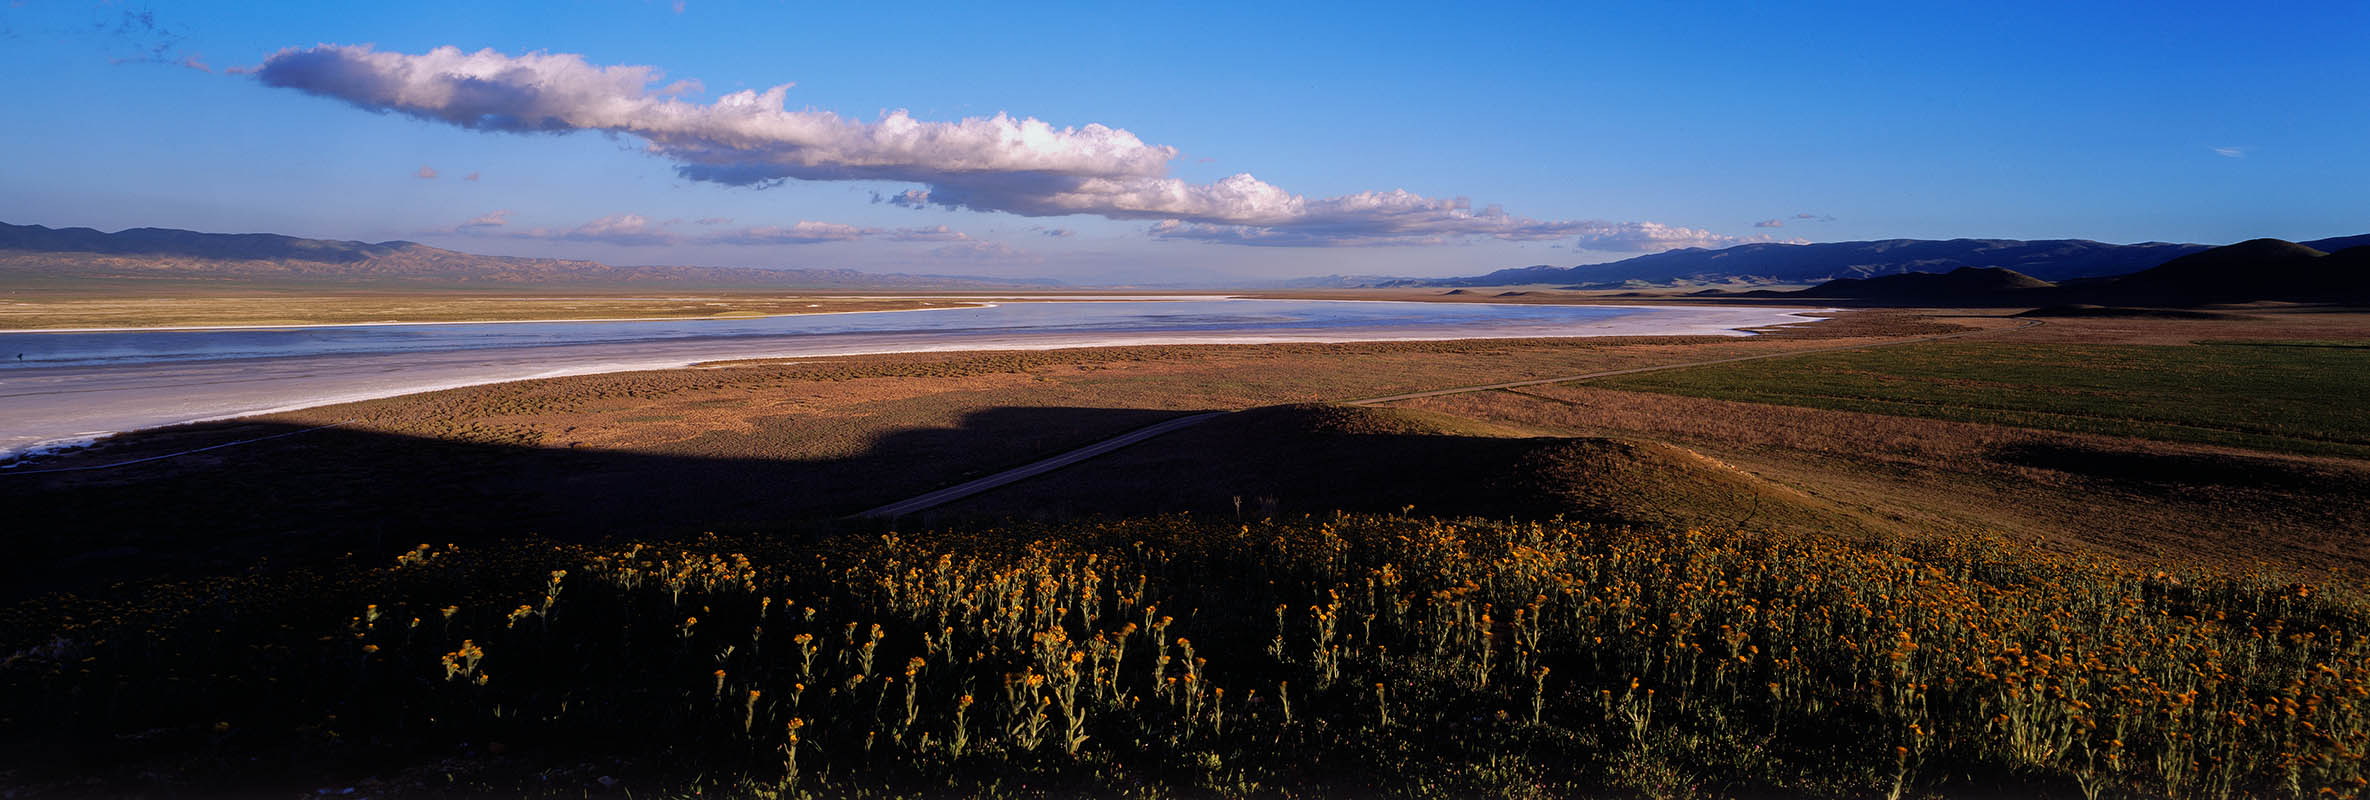 Soda Lake in the Carrizo Plains.